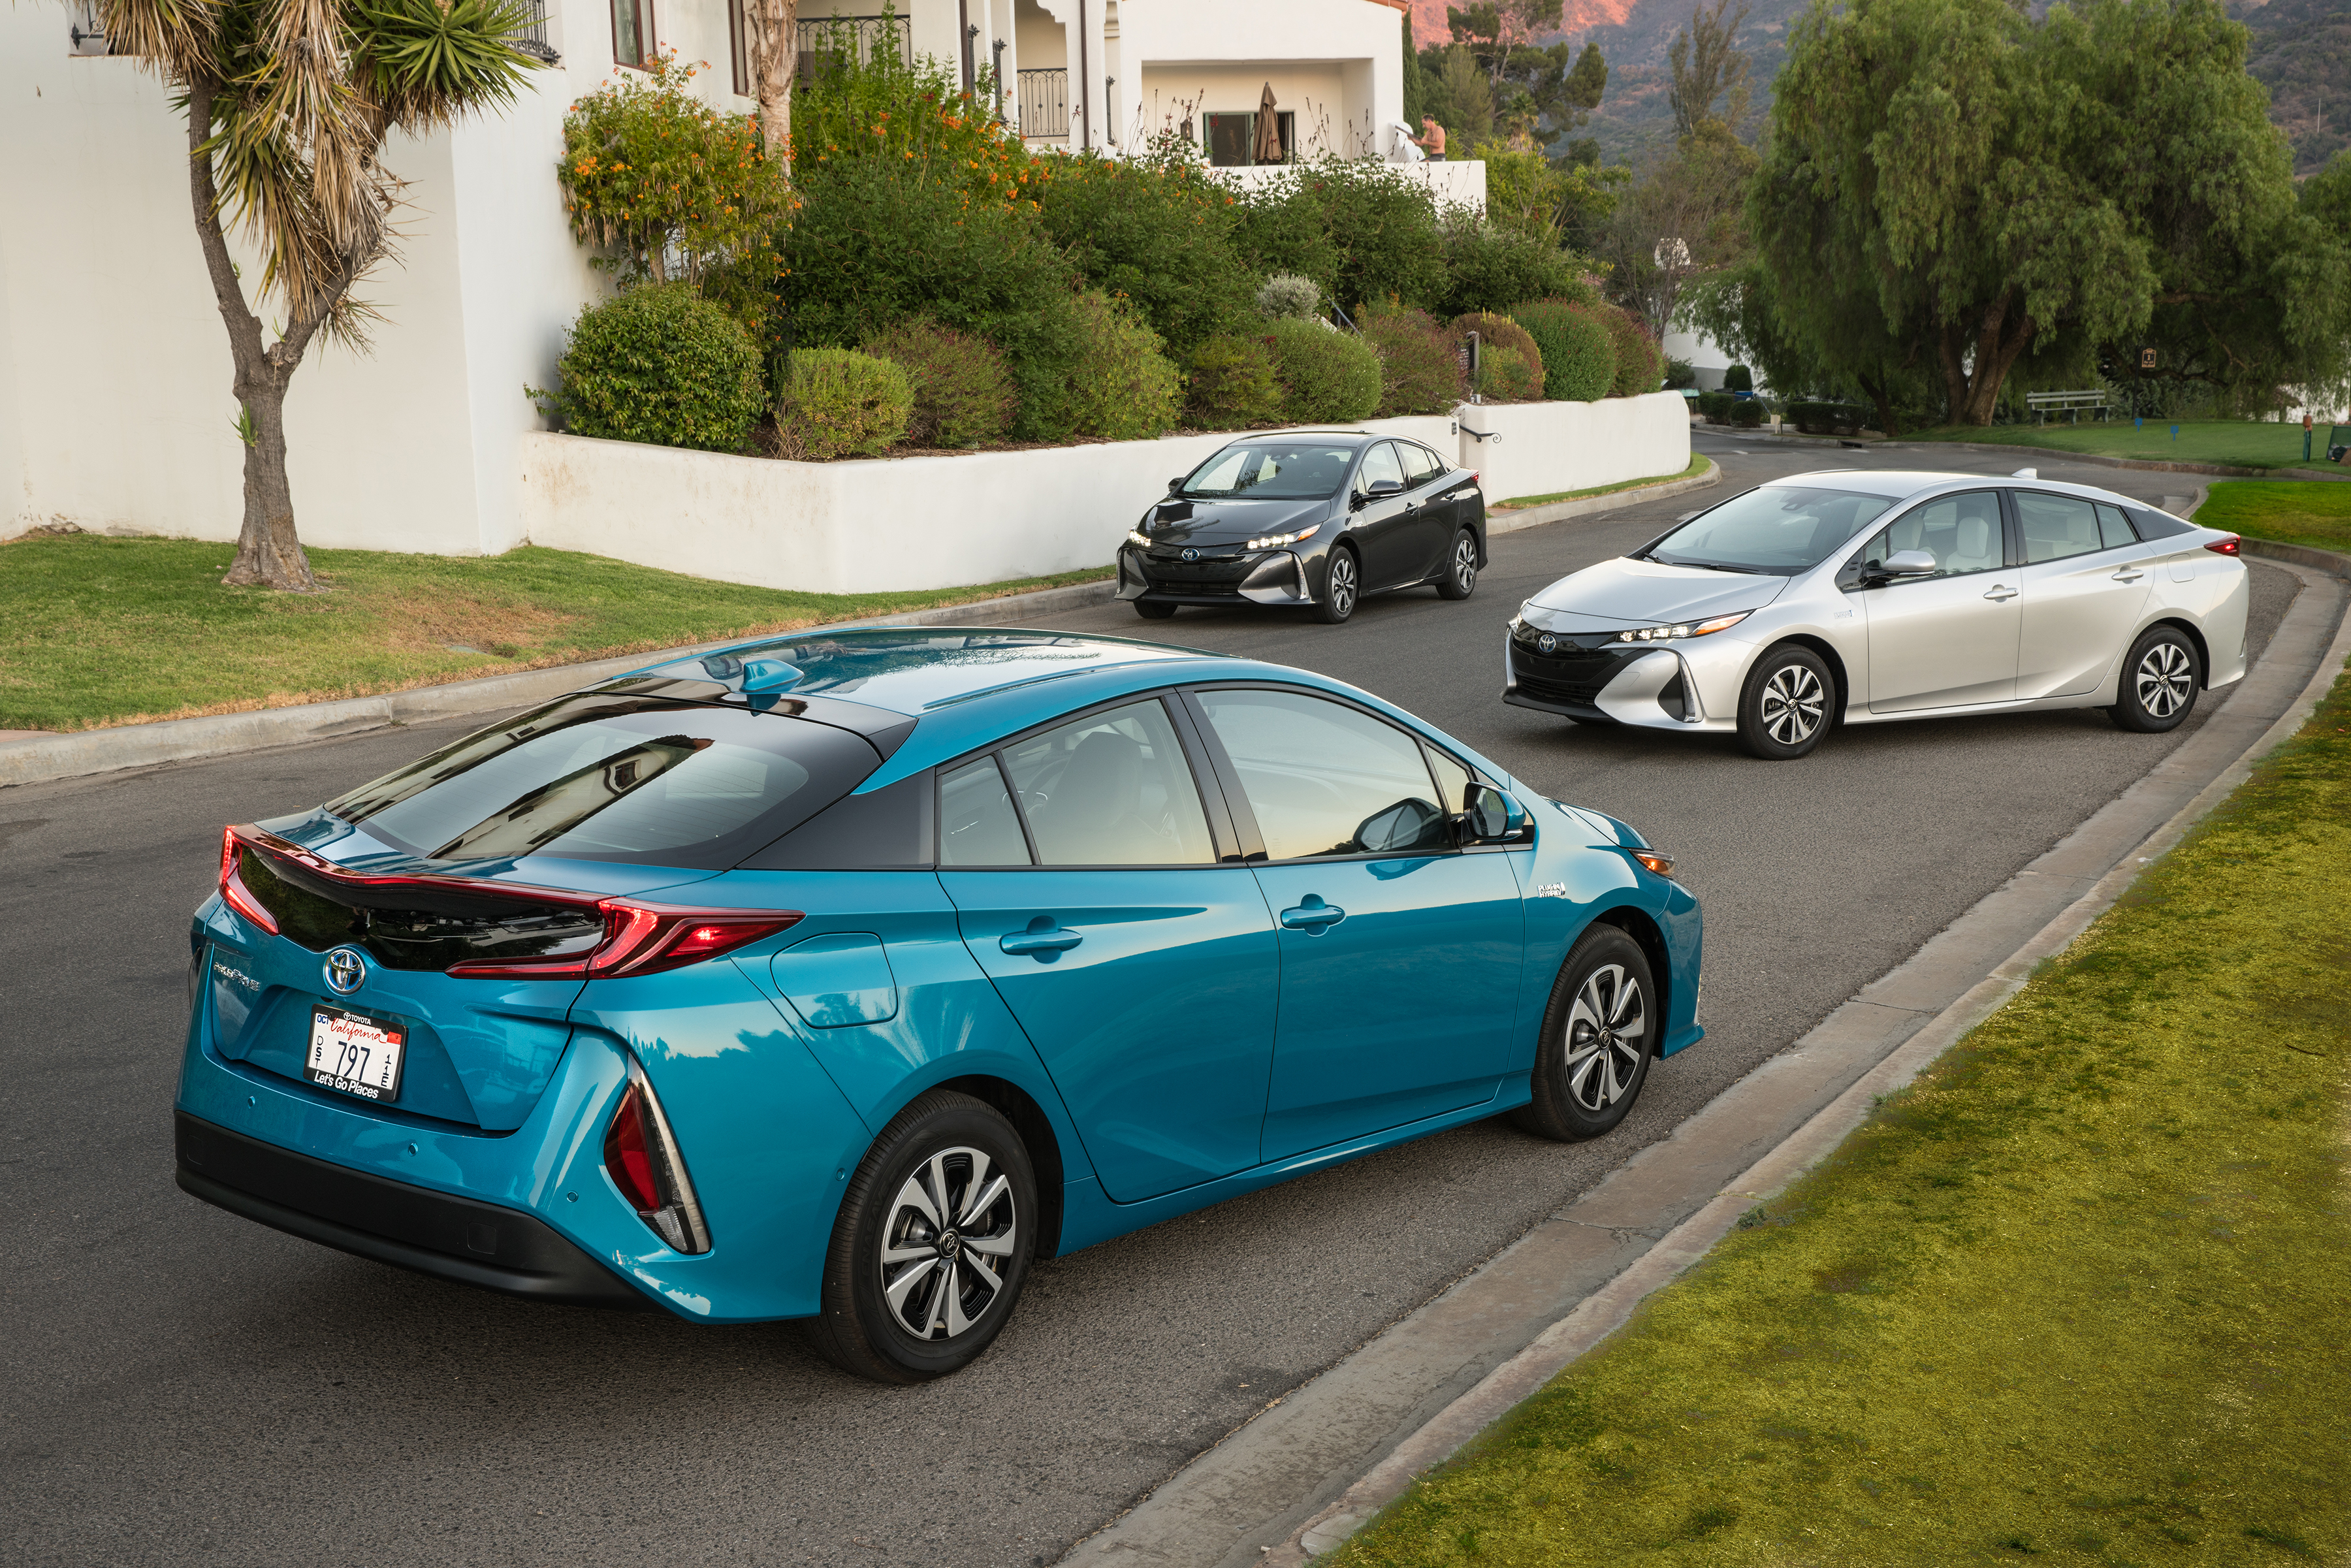 technological wonder with electrifying design meet the 2017 toyota prius prime oct 03 2016. Black Bedroom Furniture Sets. Home Design Ideas